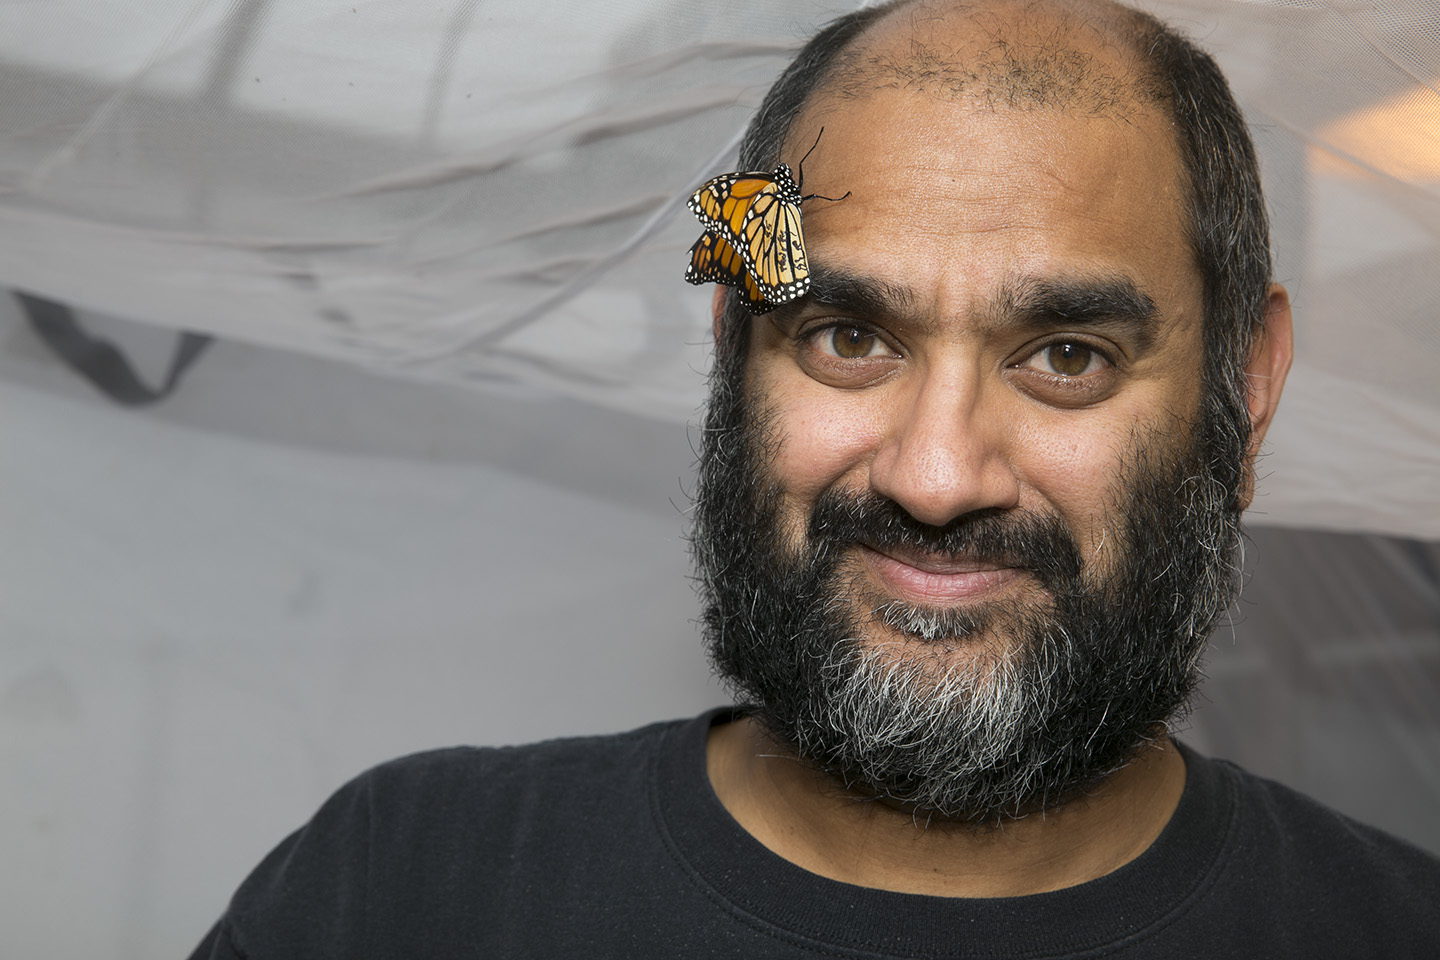 MacArthur Award winner Anurag A. Agrawal, with butterfly. Image credit, Frank DiMeo